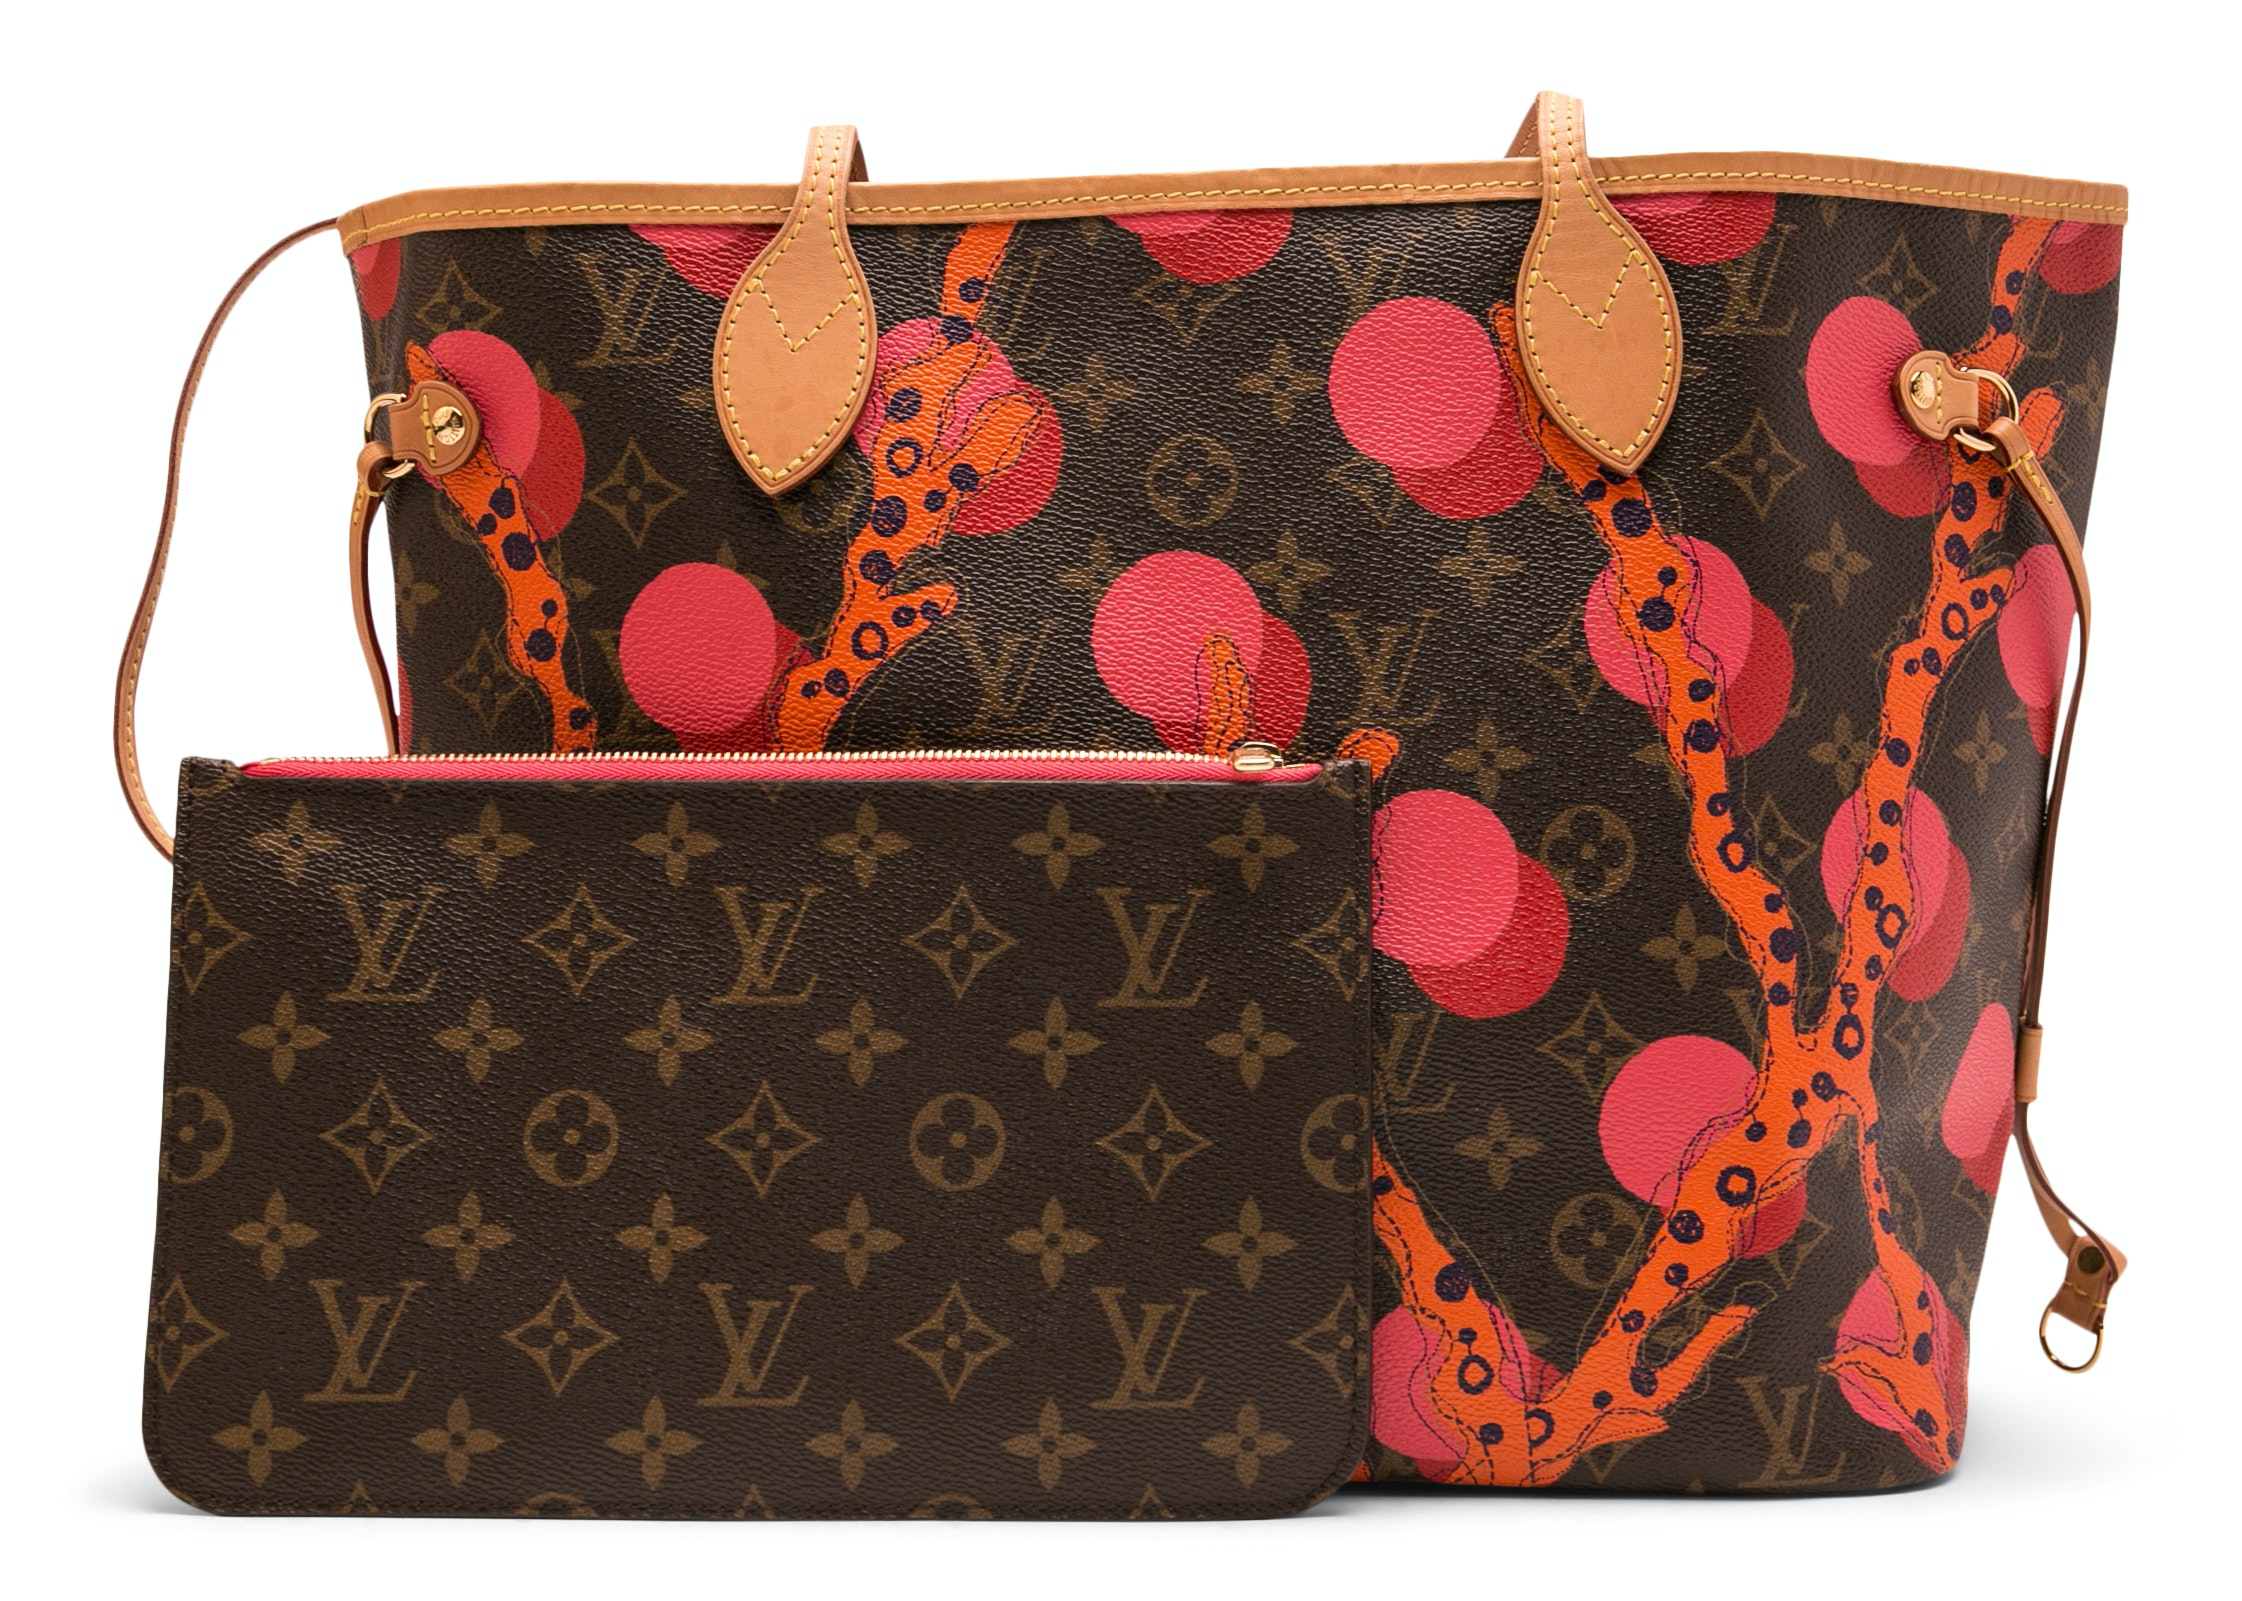 Louis Vuitton Neverfull Nm Monogram Ramages MM (With Pouch) Grenade